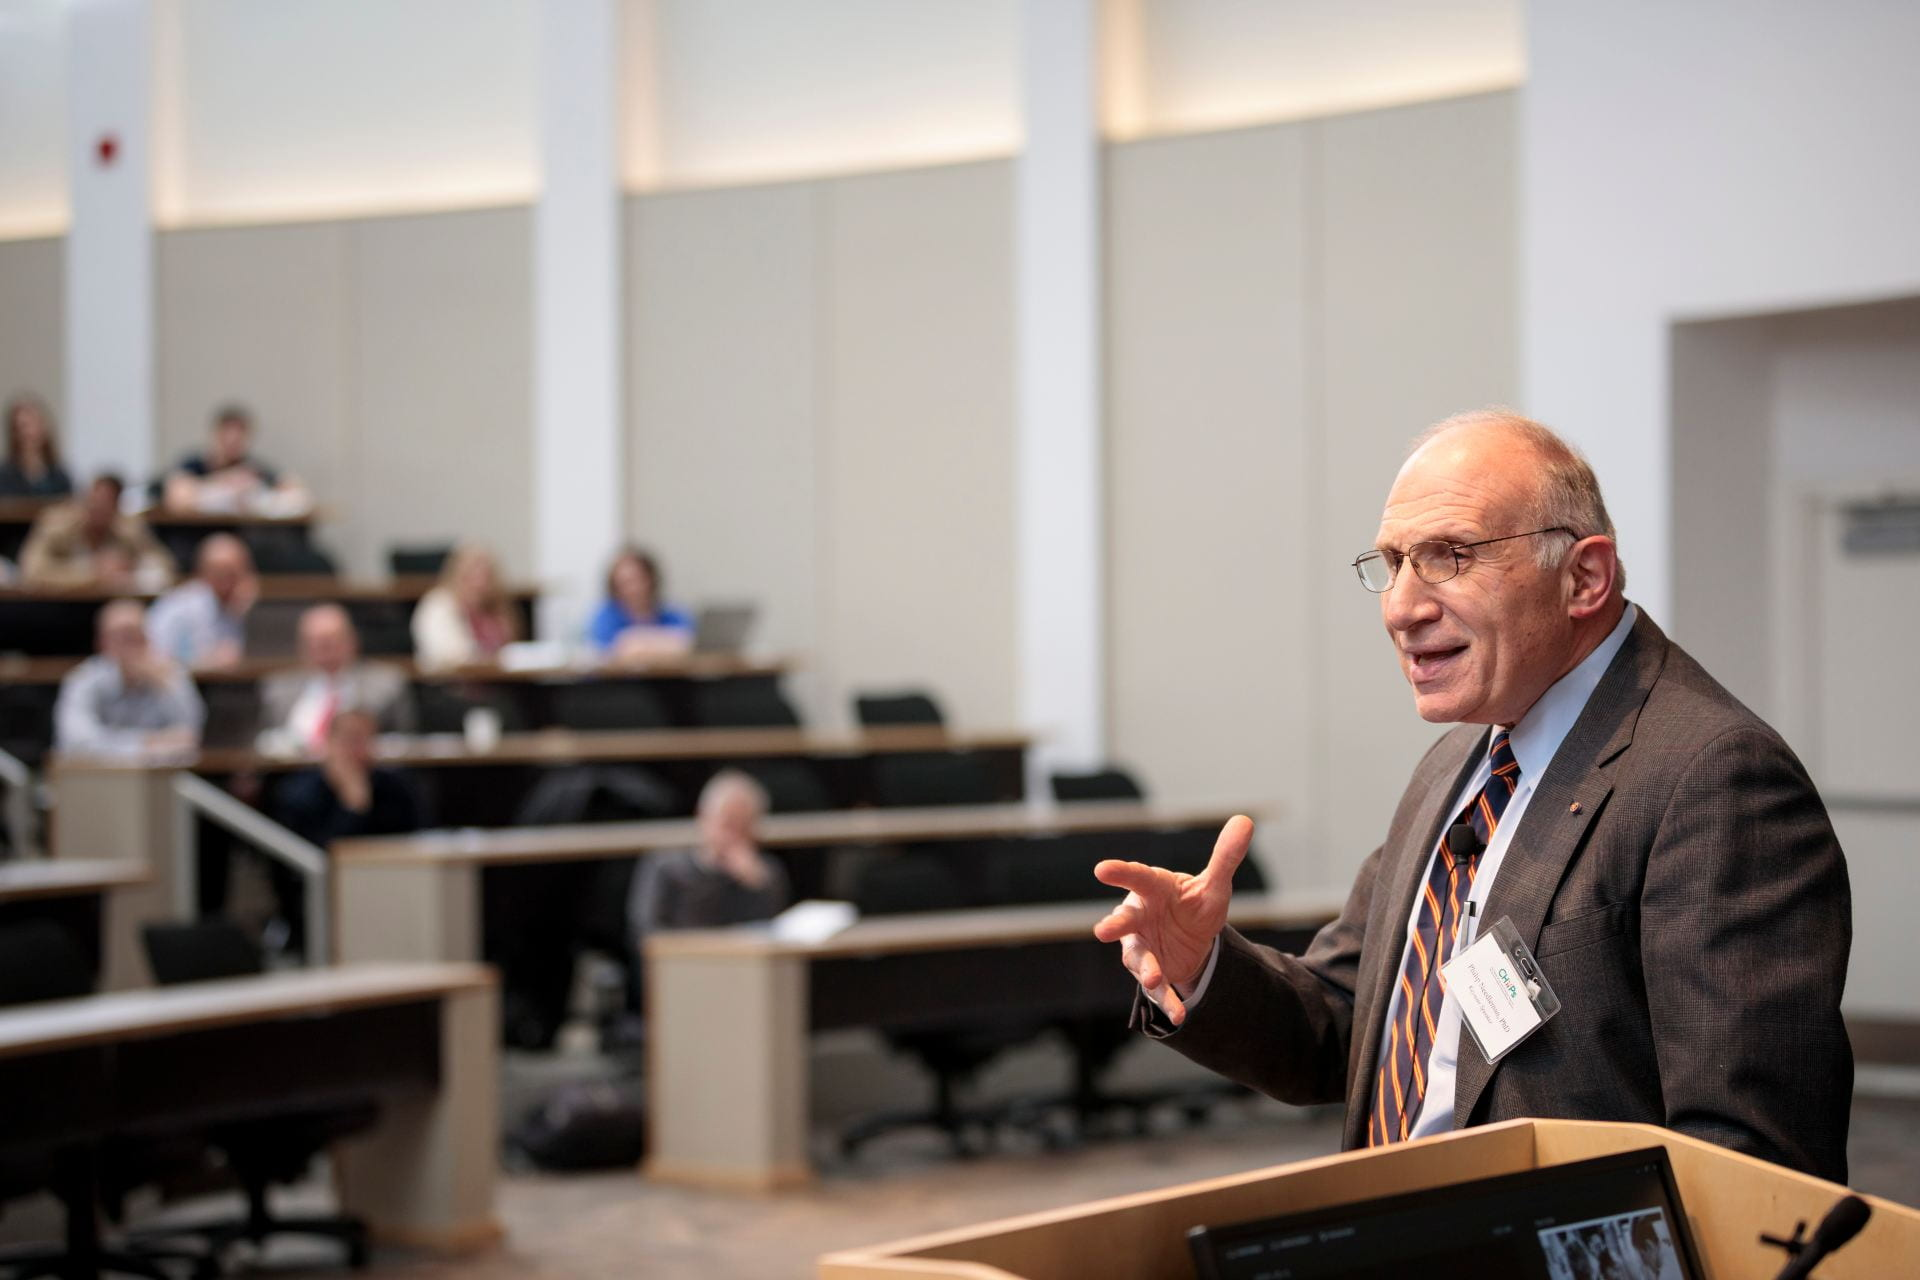 """Philip Needleman, PhD, gives a keynote speech """"Things I Learned at Washington University and Industry about Drug Discovery and Development"""""""